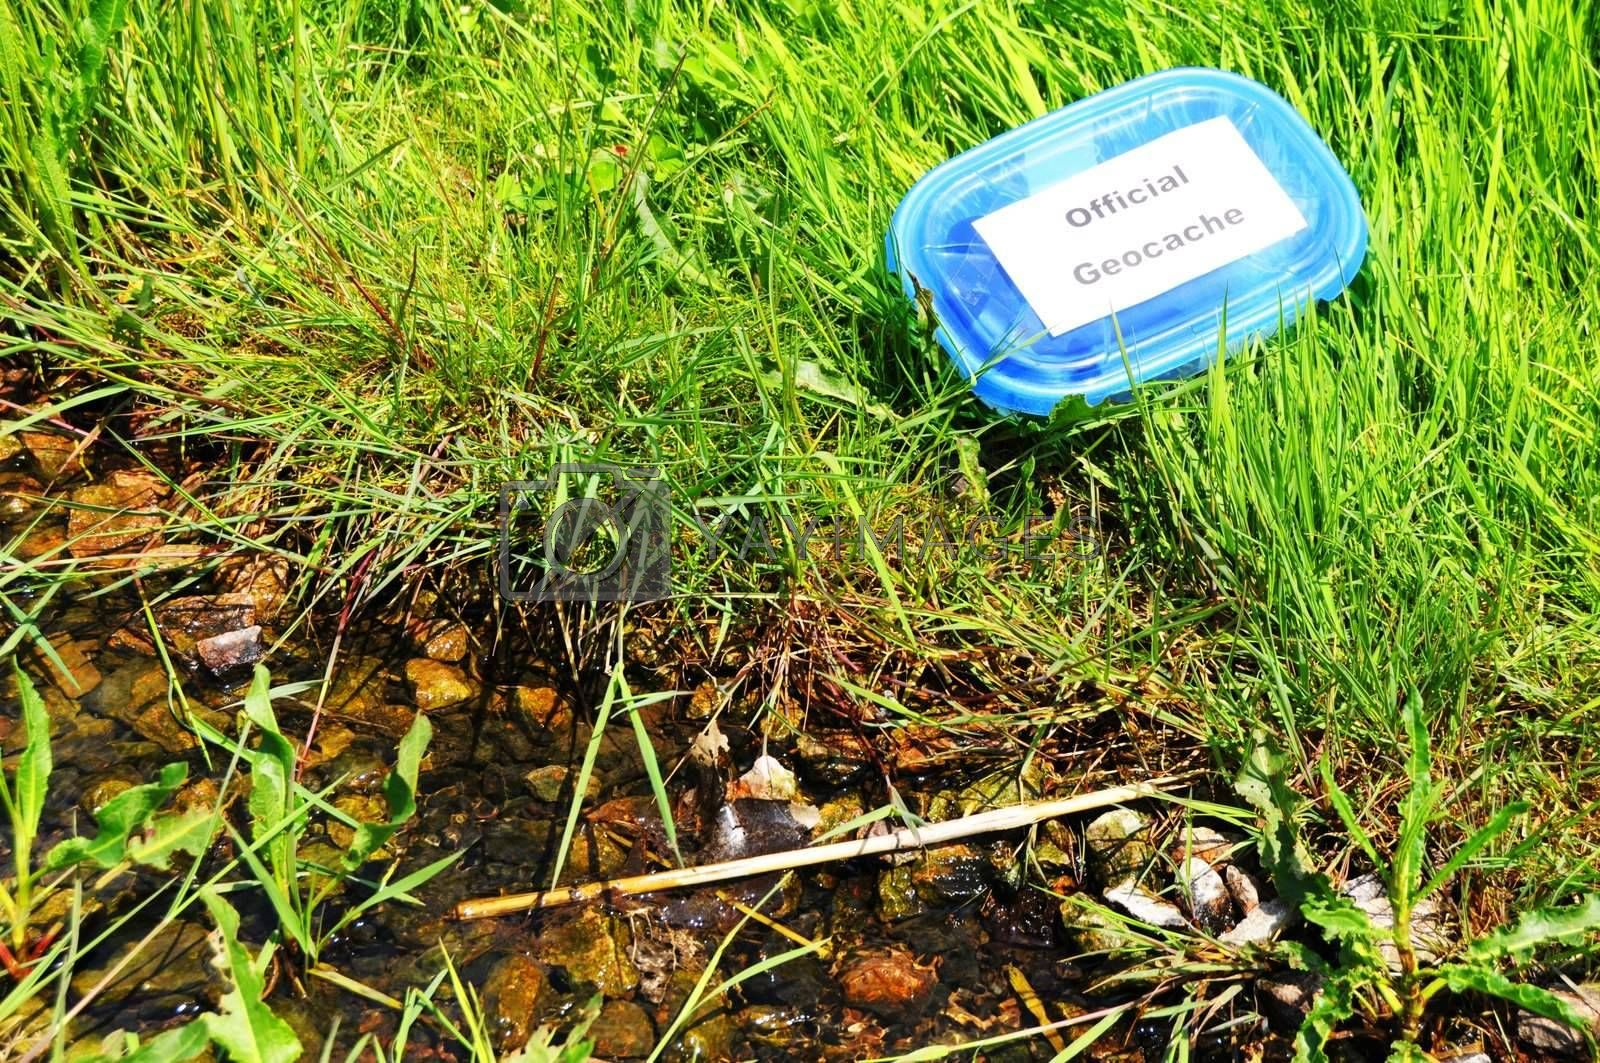 Royalty free image of geocache by gunnar3000